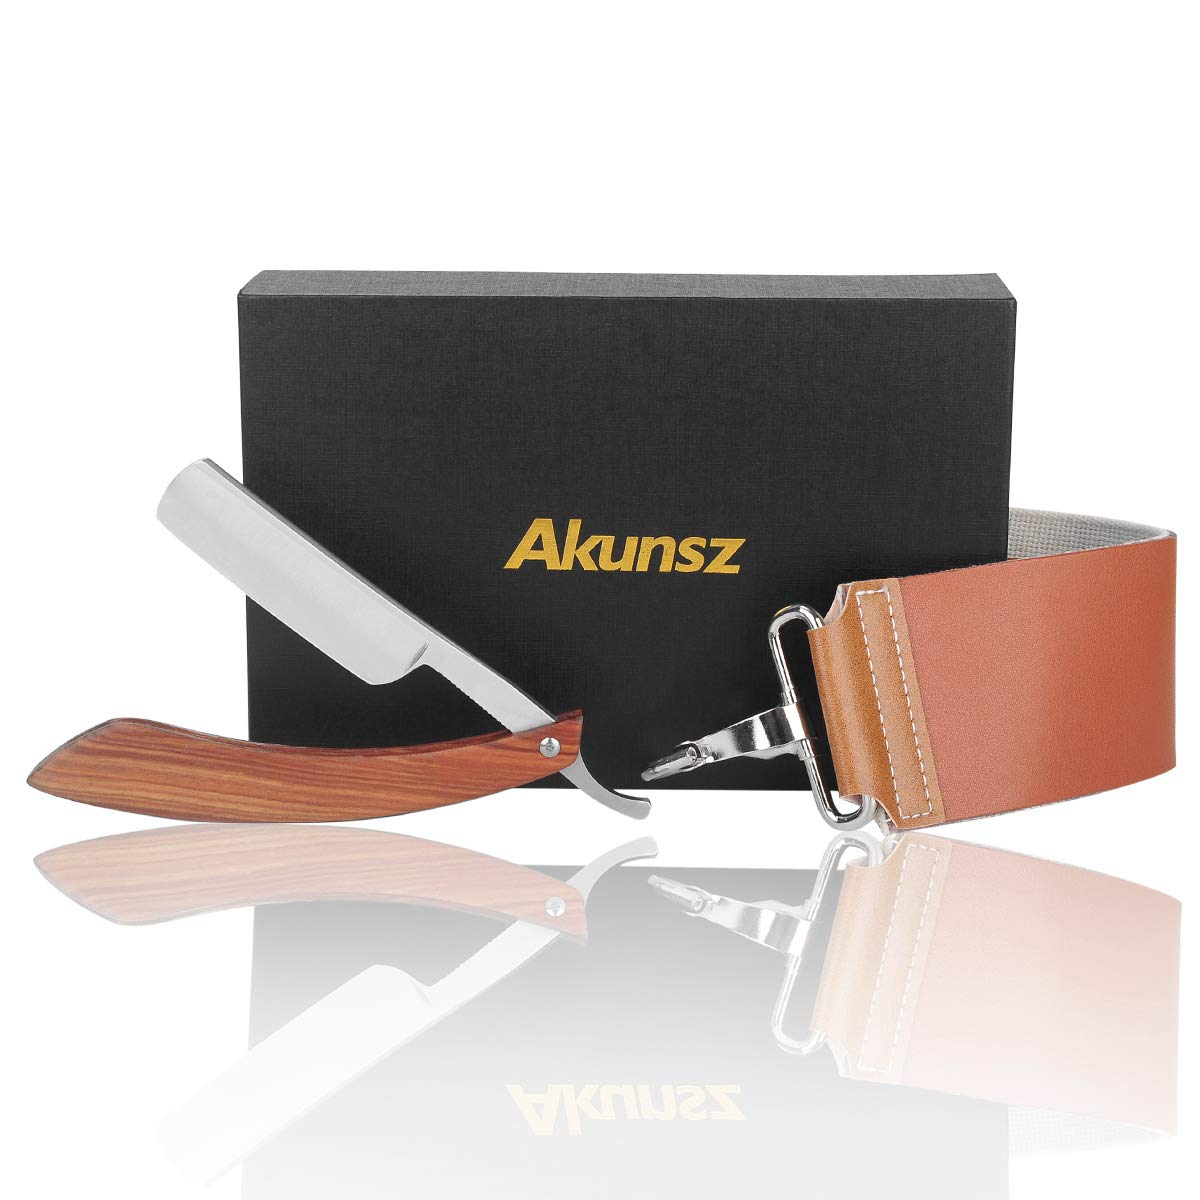 AKUNSZ Straight Razor Kit Cutthroat Razor Shave Ready Stainless Steel Shaving Razor with Leather Strop - One-Piece Rosewood Handle Ltd.